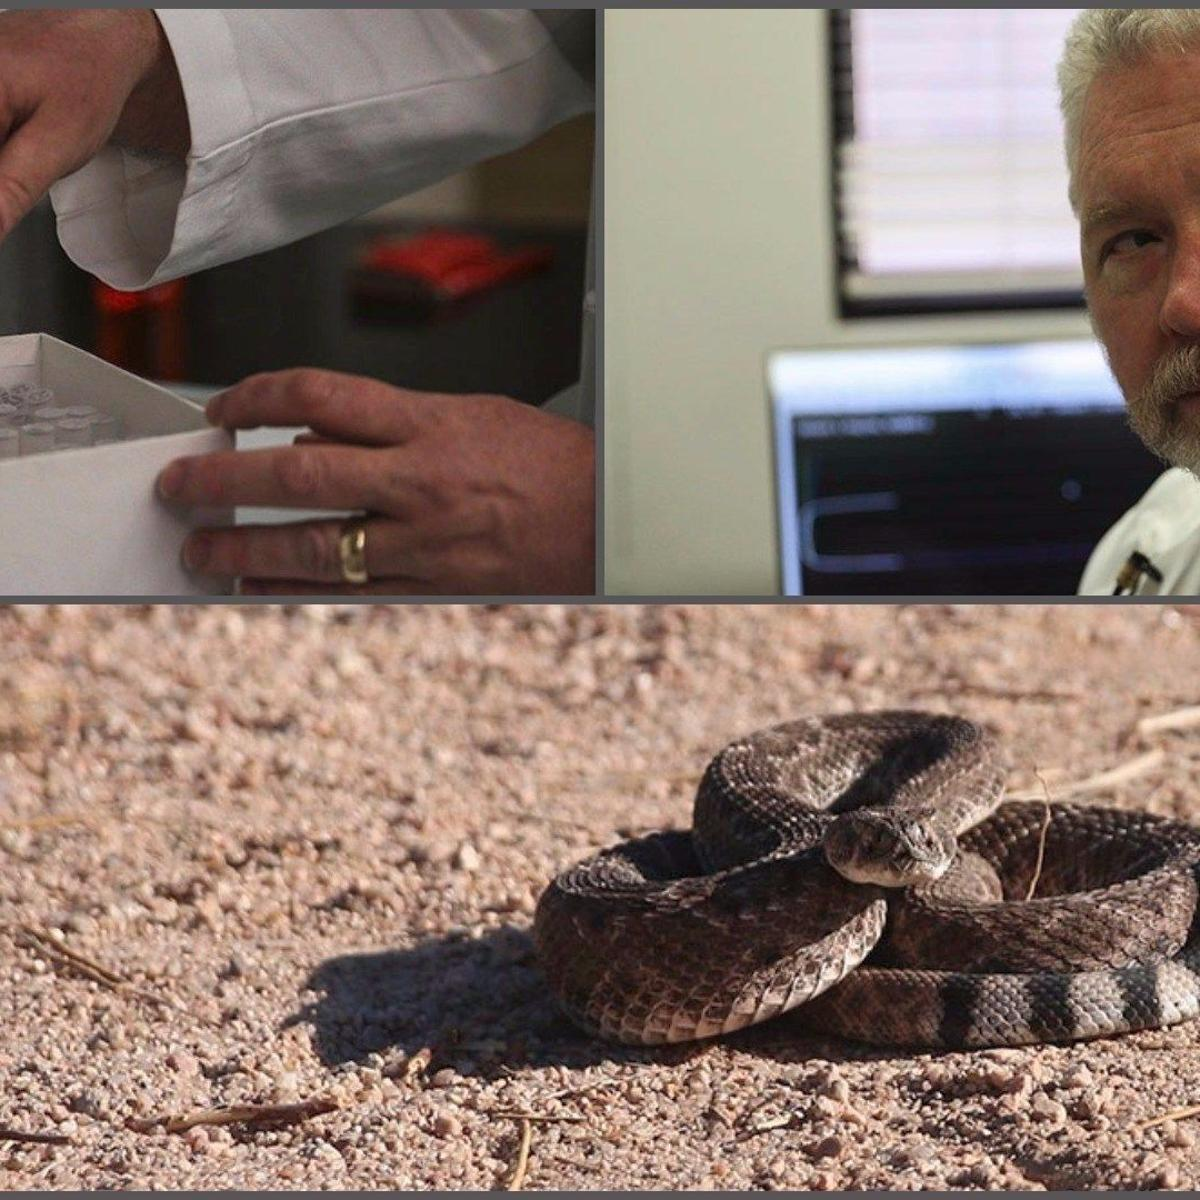 UA doctor's drug could buy time between rattlesnake bite